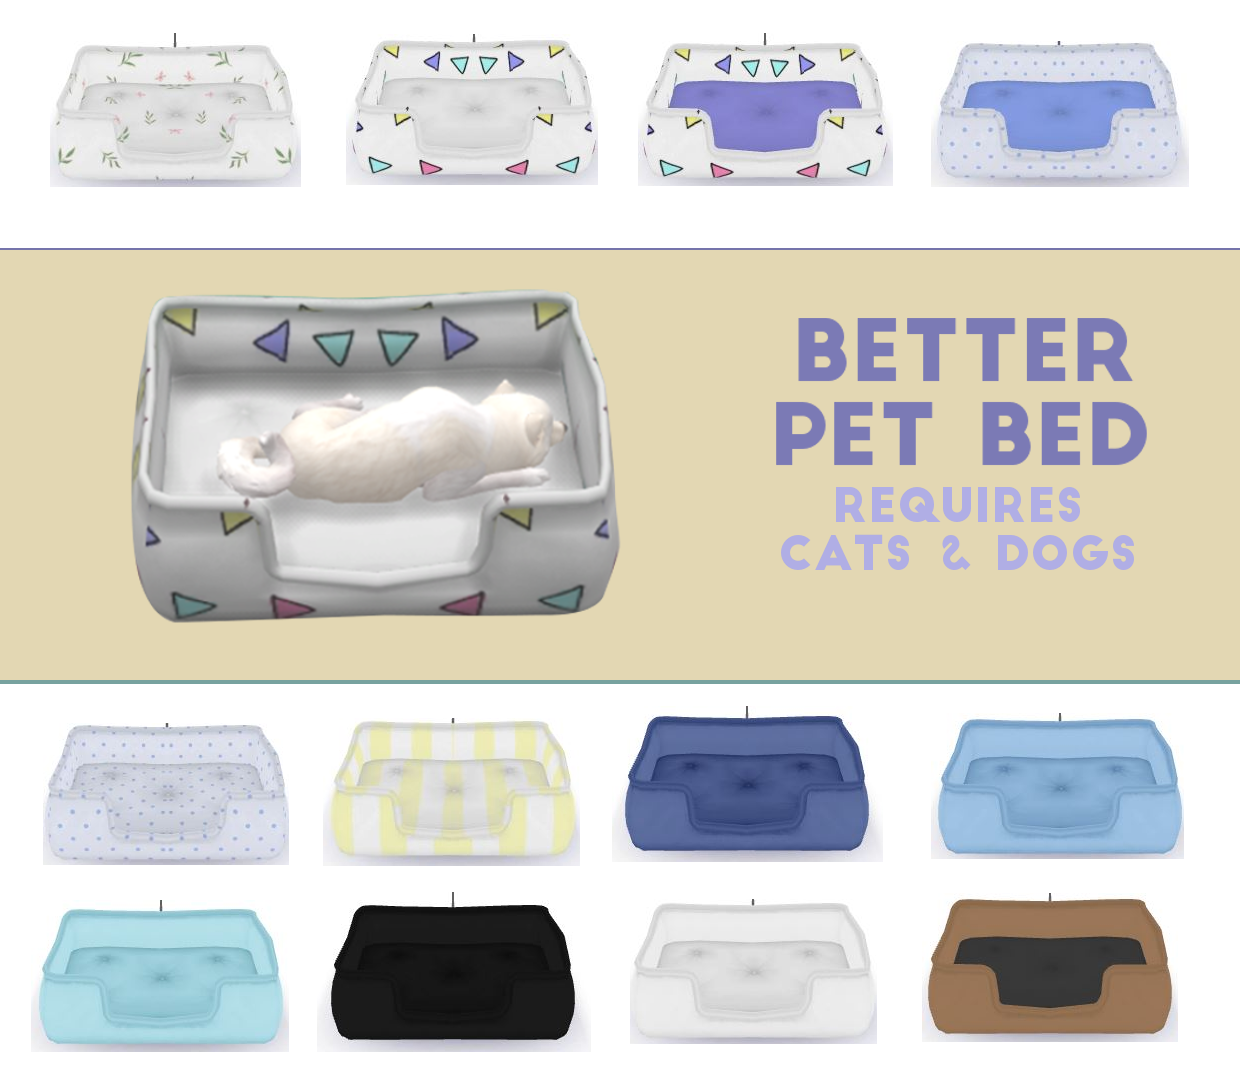 Better Pet Bed Sims 4 CC